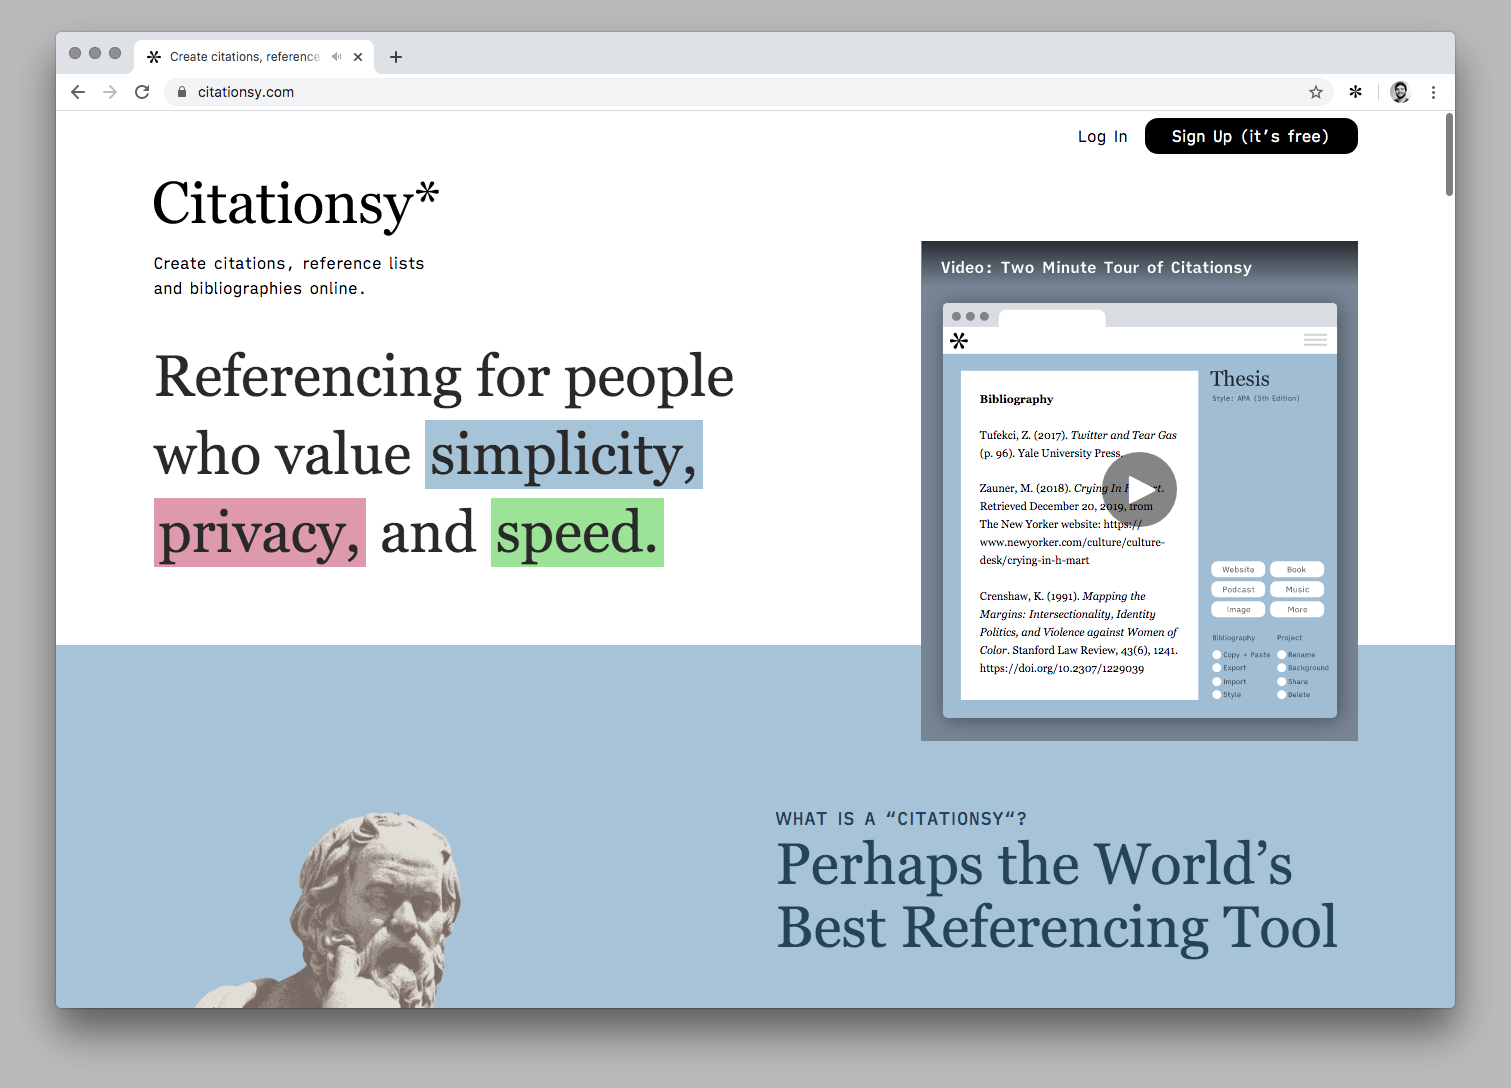 Screenshot of the Citationsy Website